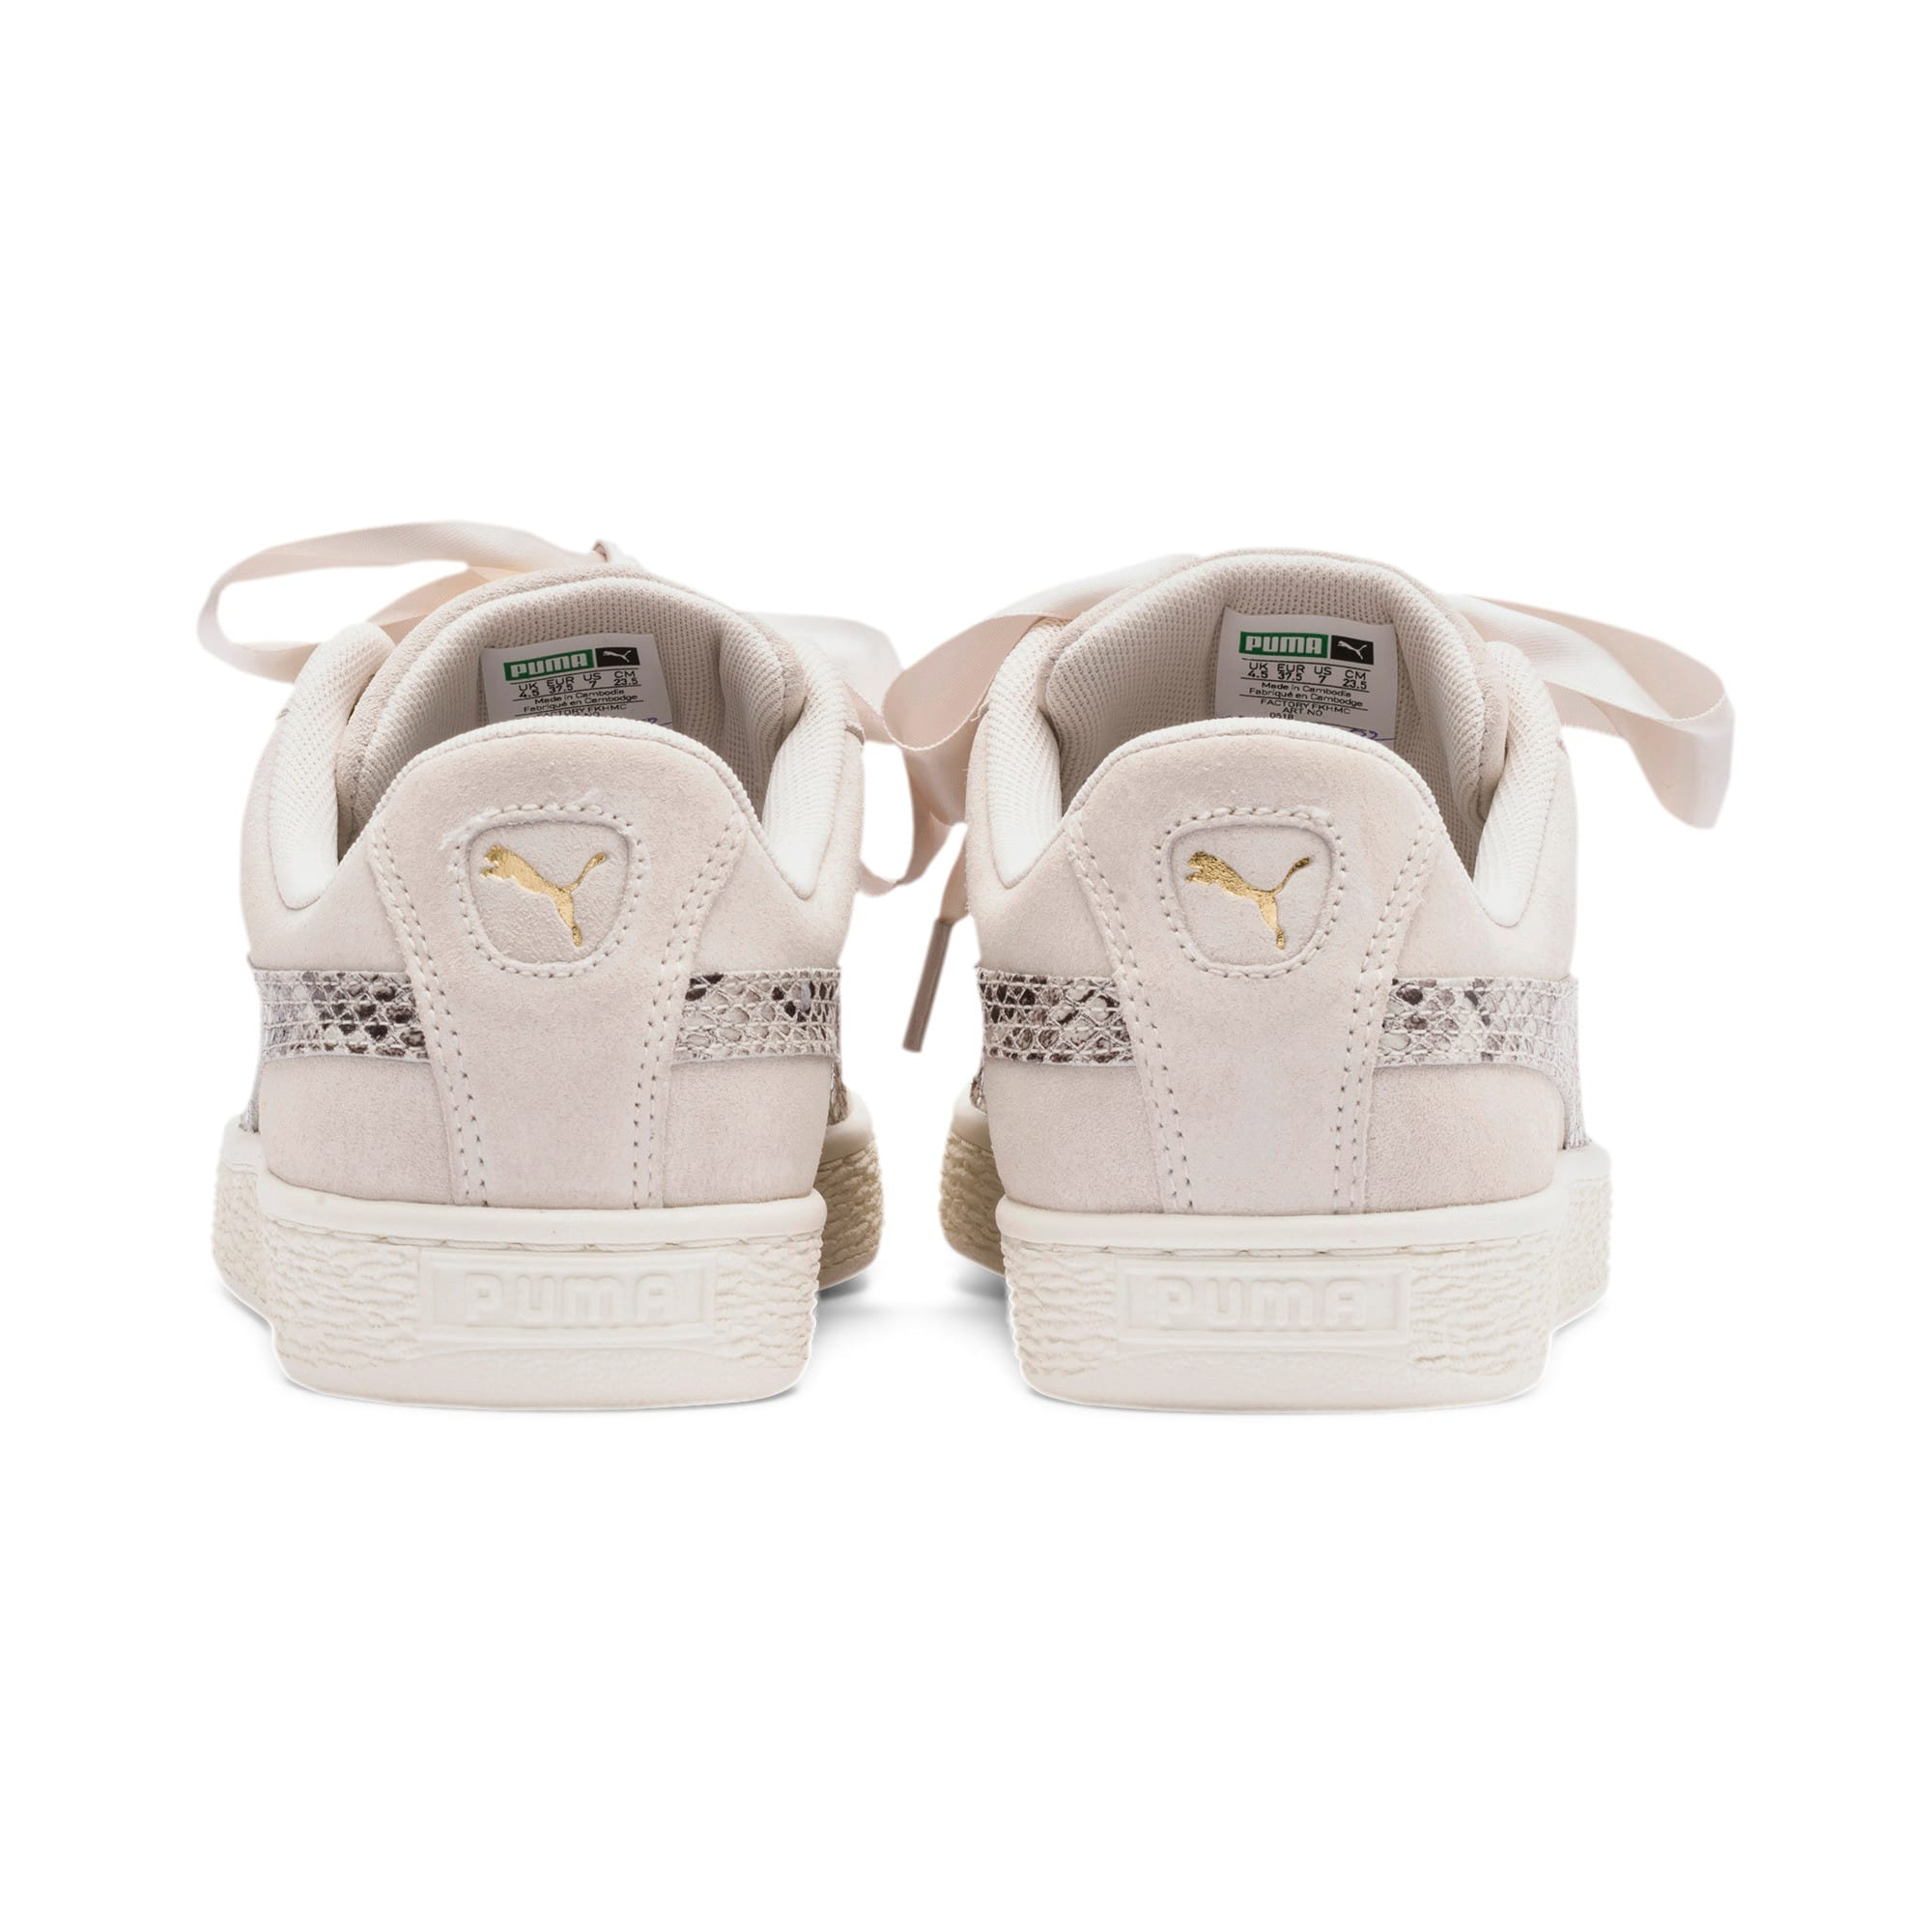 Thumbnail 4 of Suede Heart Snake Lux Women's Sneakers, Pastel Parchment-PTeam Gold, medium